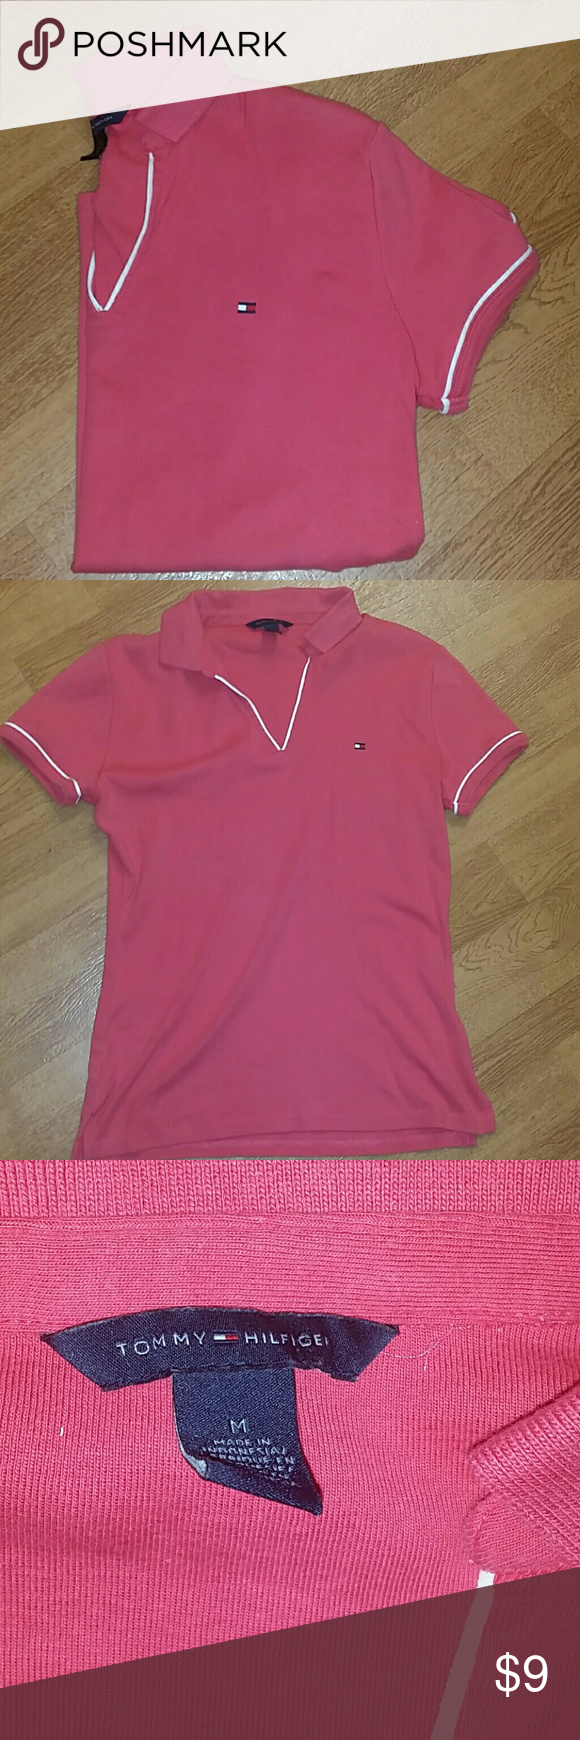 NL tommy Hilfiger coral top Nice top Light pilling Good condition Tommy Hilfiger Tops Blouses